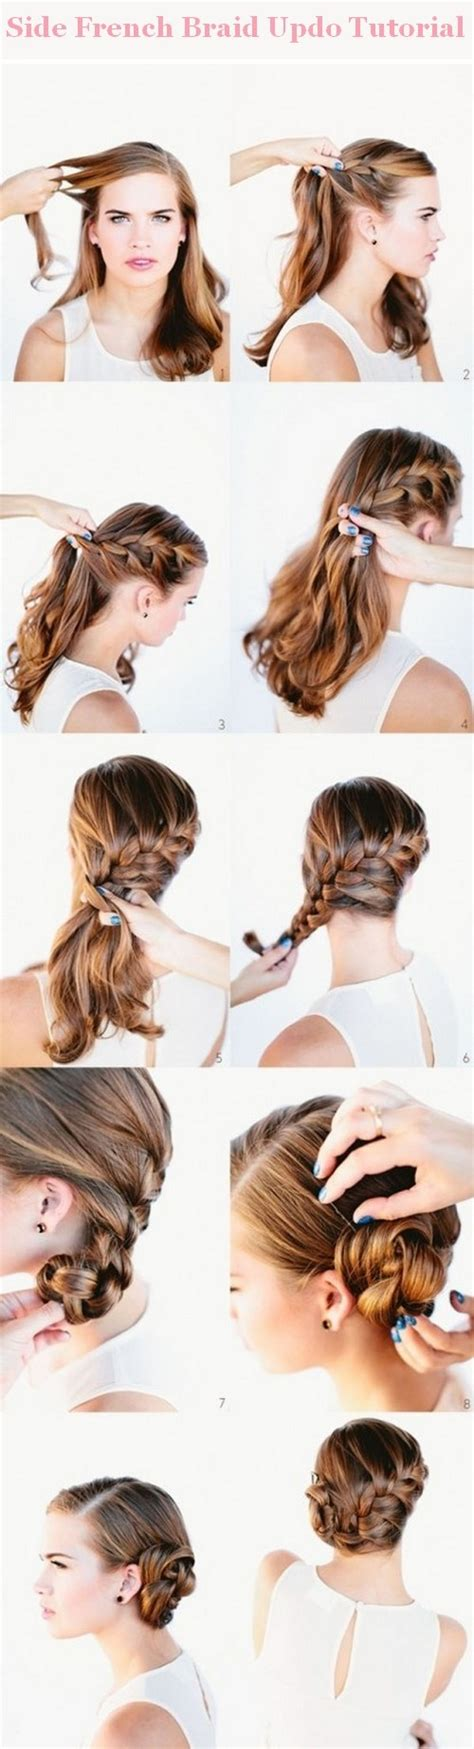 15 Stylish Buns For Your Long Hair Pretty Designs | 15 stylish buns for your long hair pretty designs